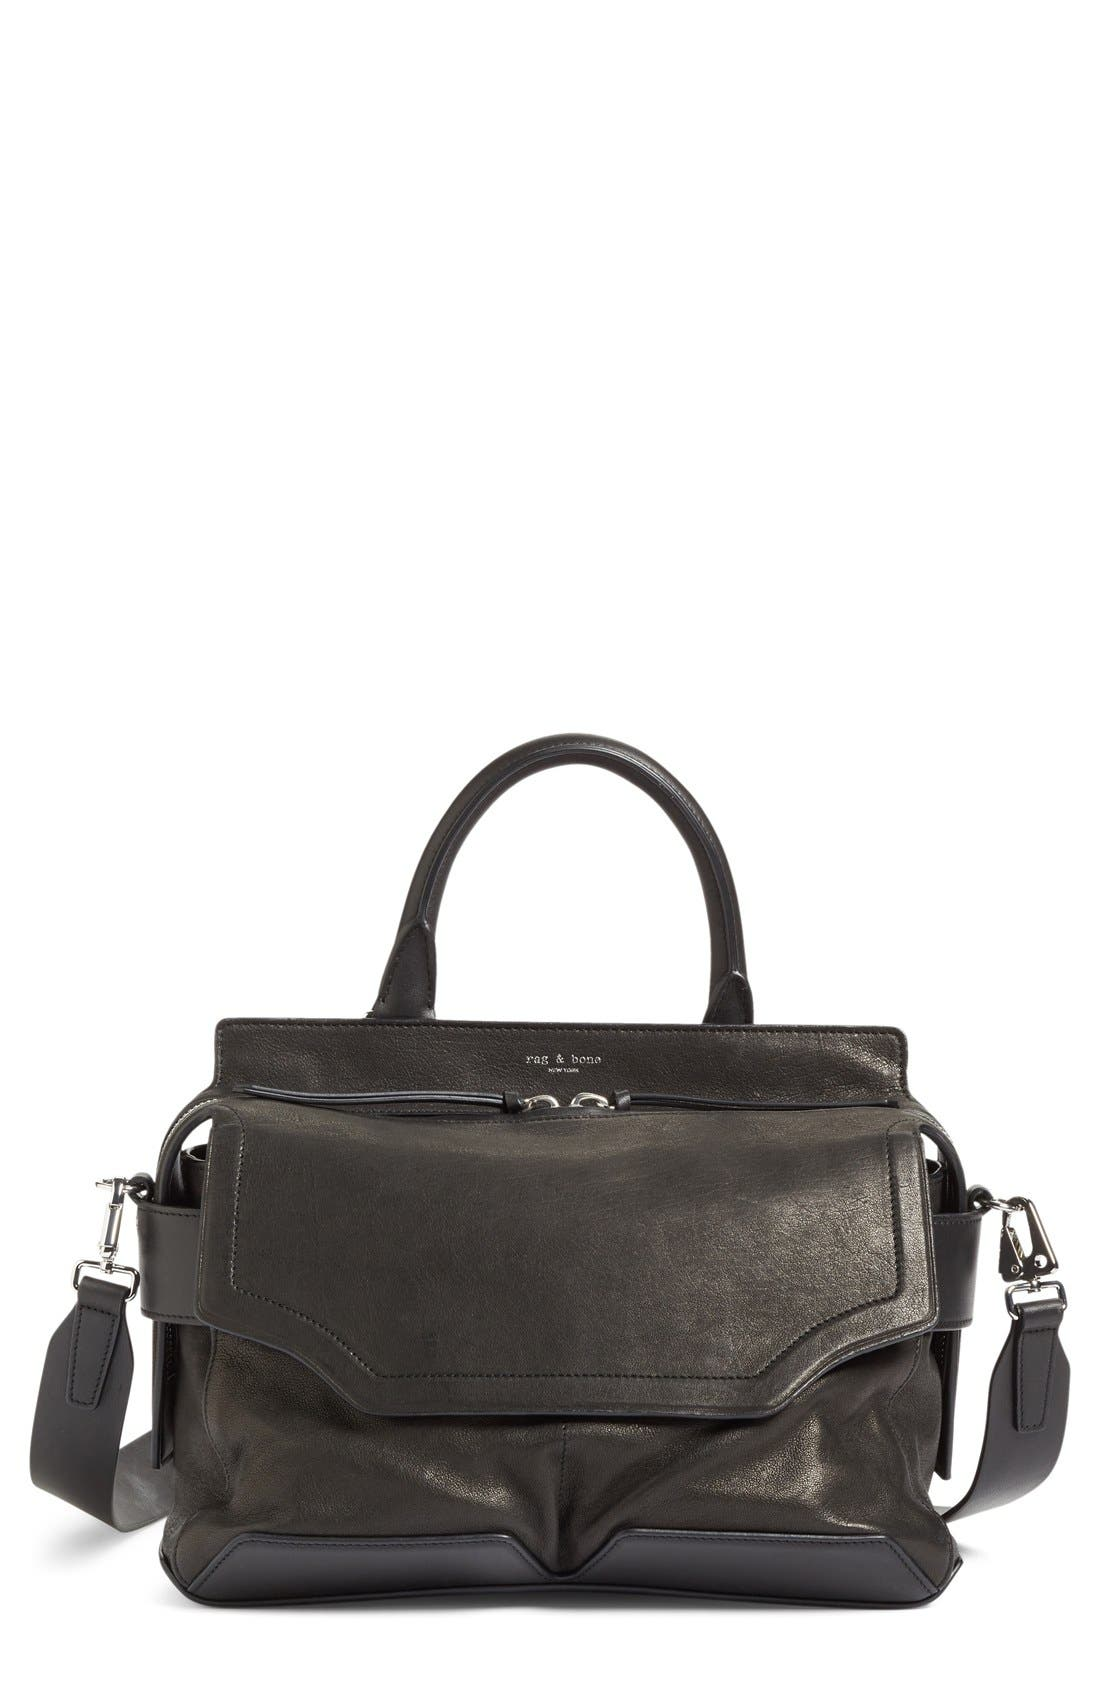 rag & bone 'Pilot' Lambskin Leather Satchel